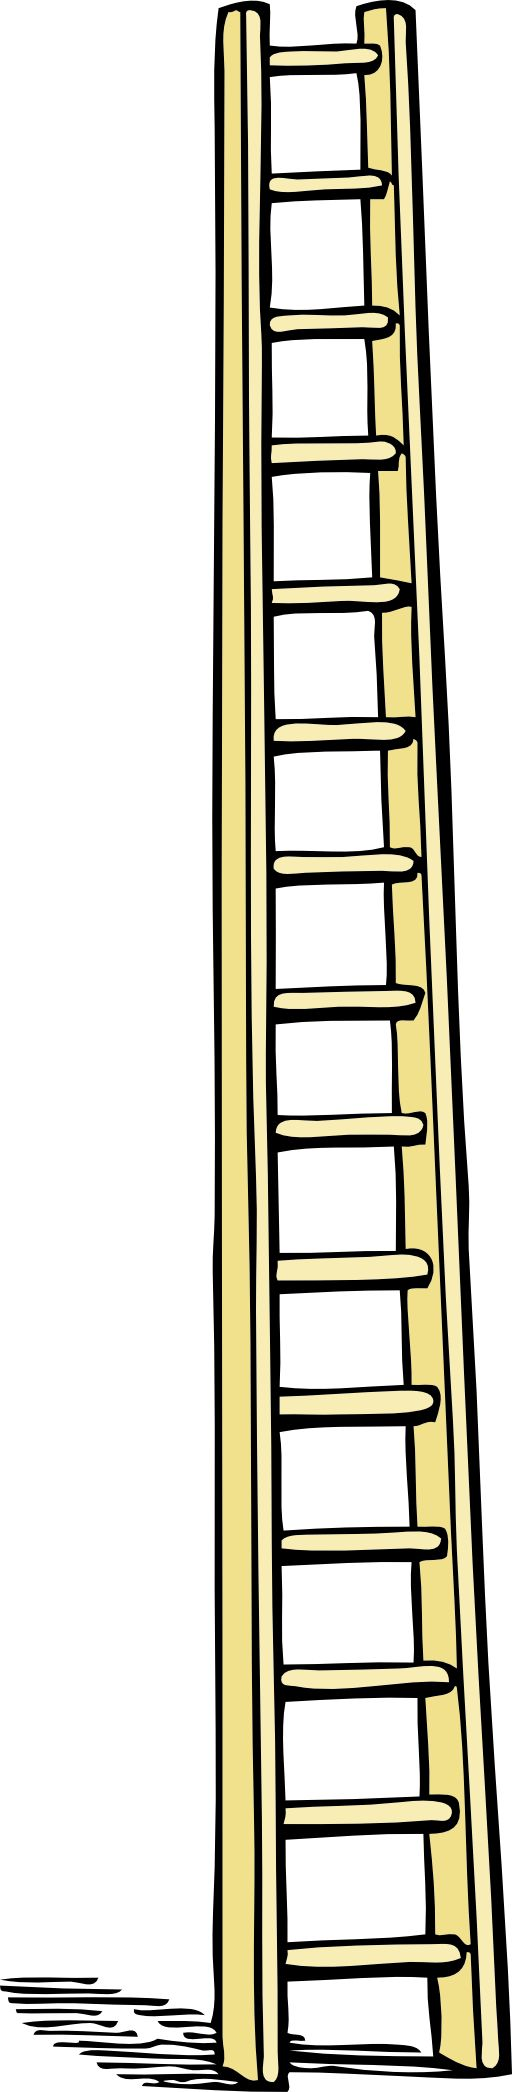 clipart black and white stock Clipart coloring . Ladder transparent colouring page